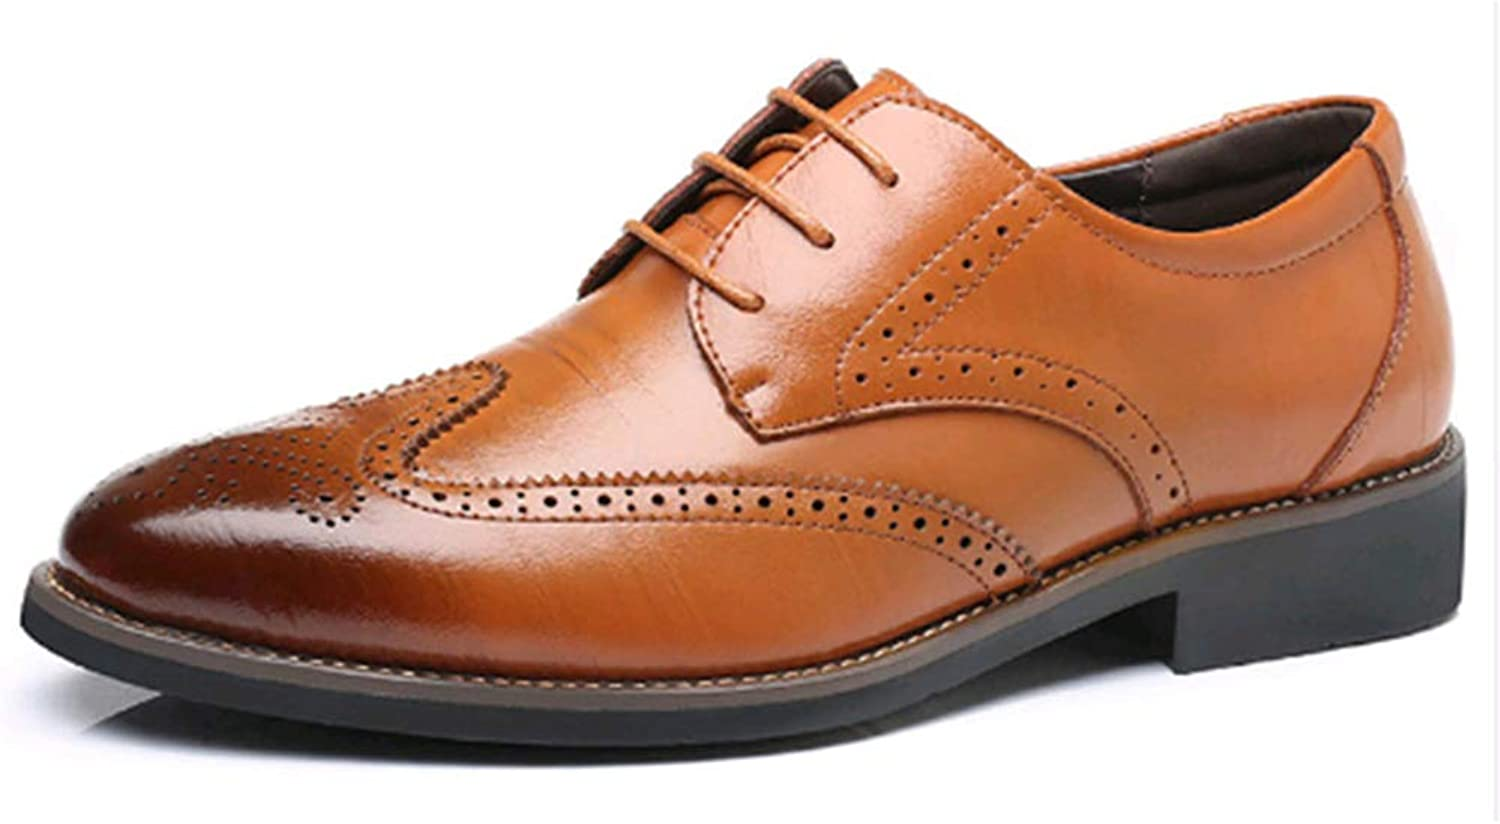 Formal Men Dress shoes Genuine Leather Classic Brogue shoes Flats Oxfords for Wedding Office Business shoes